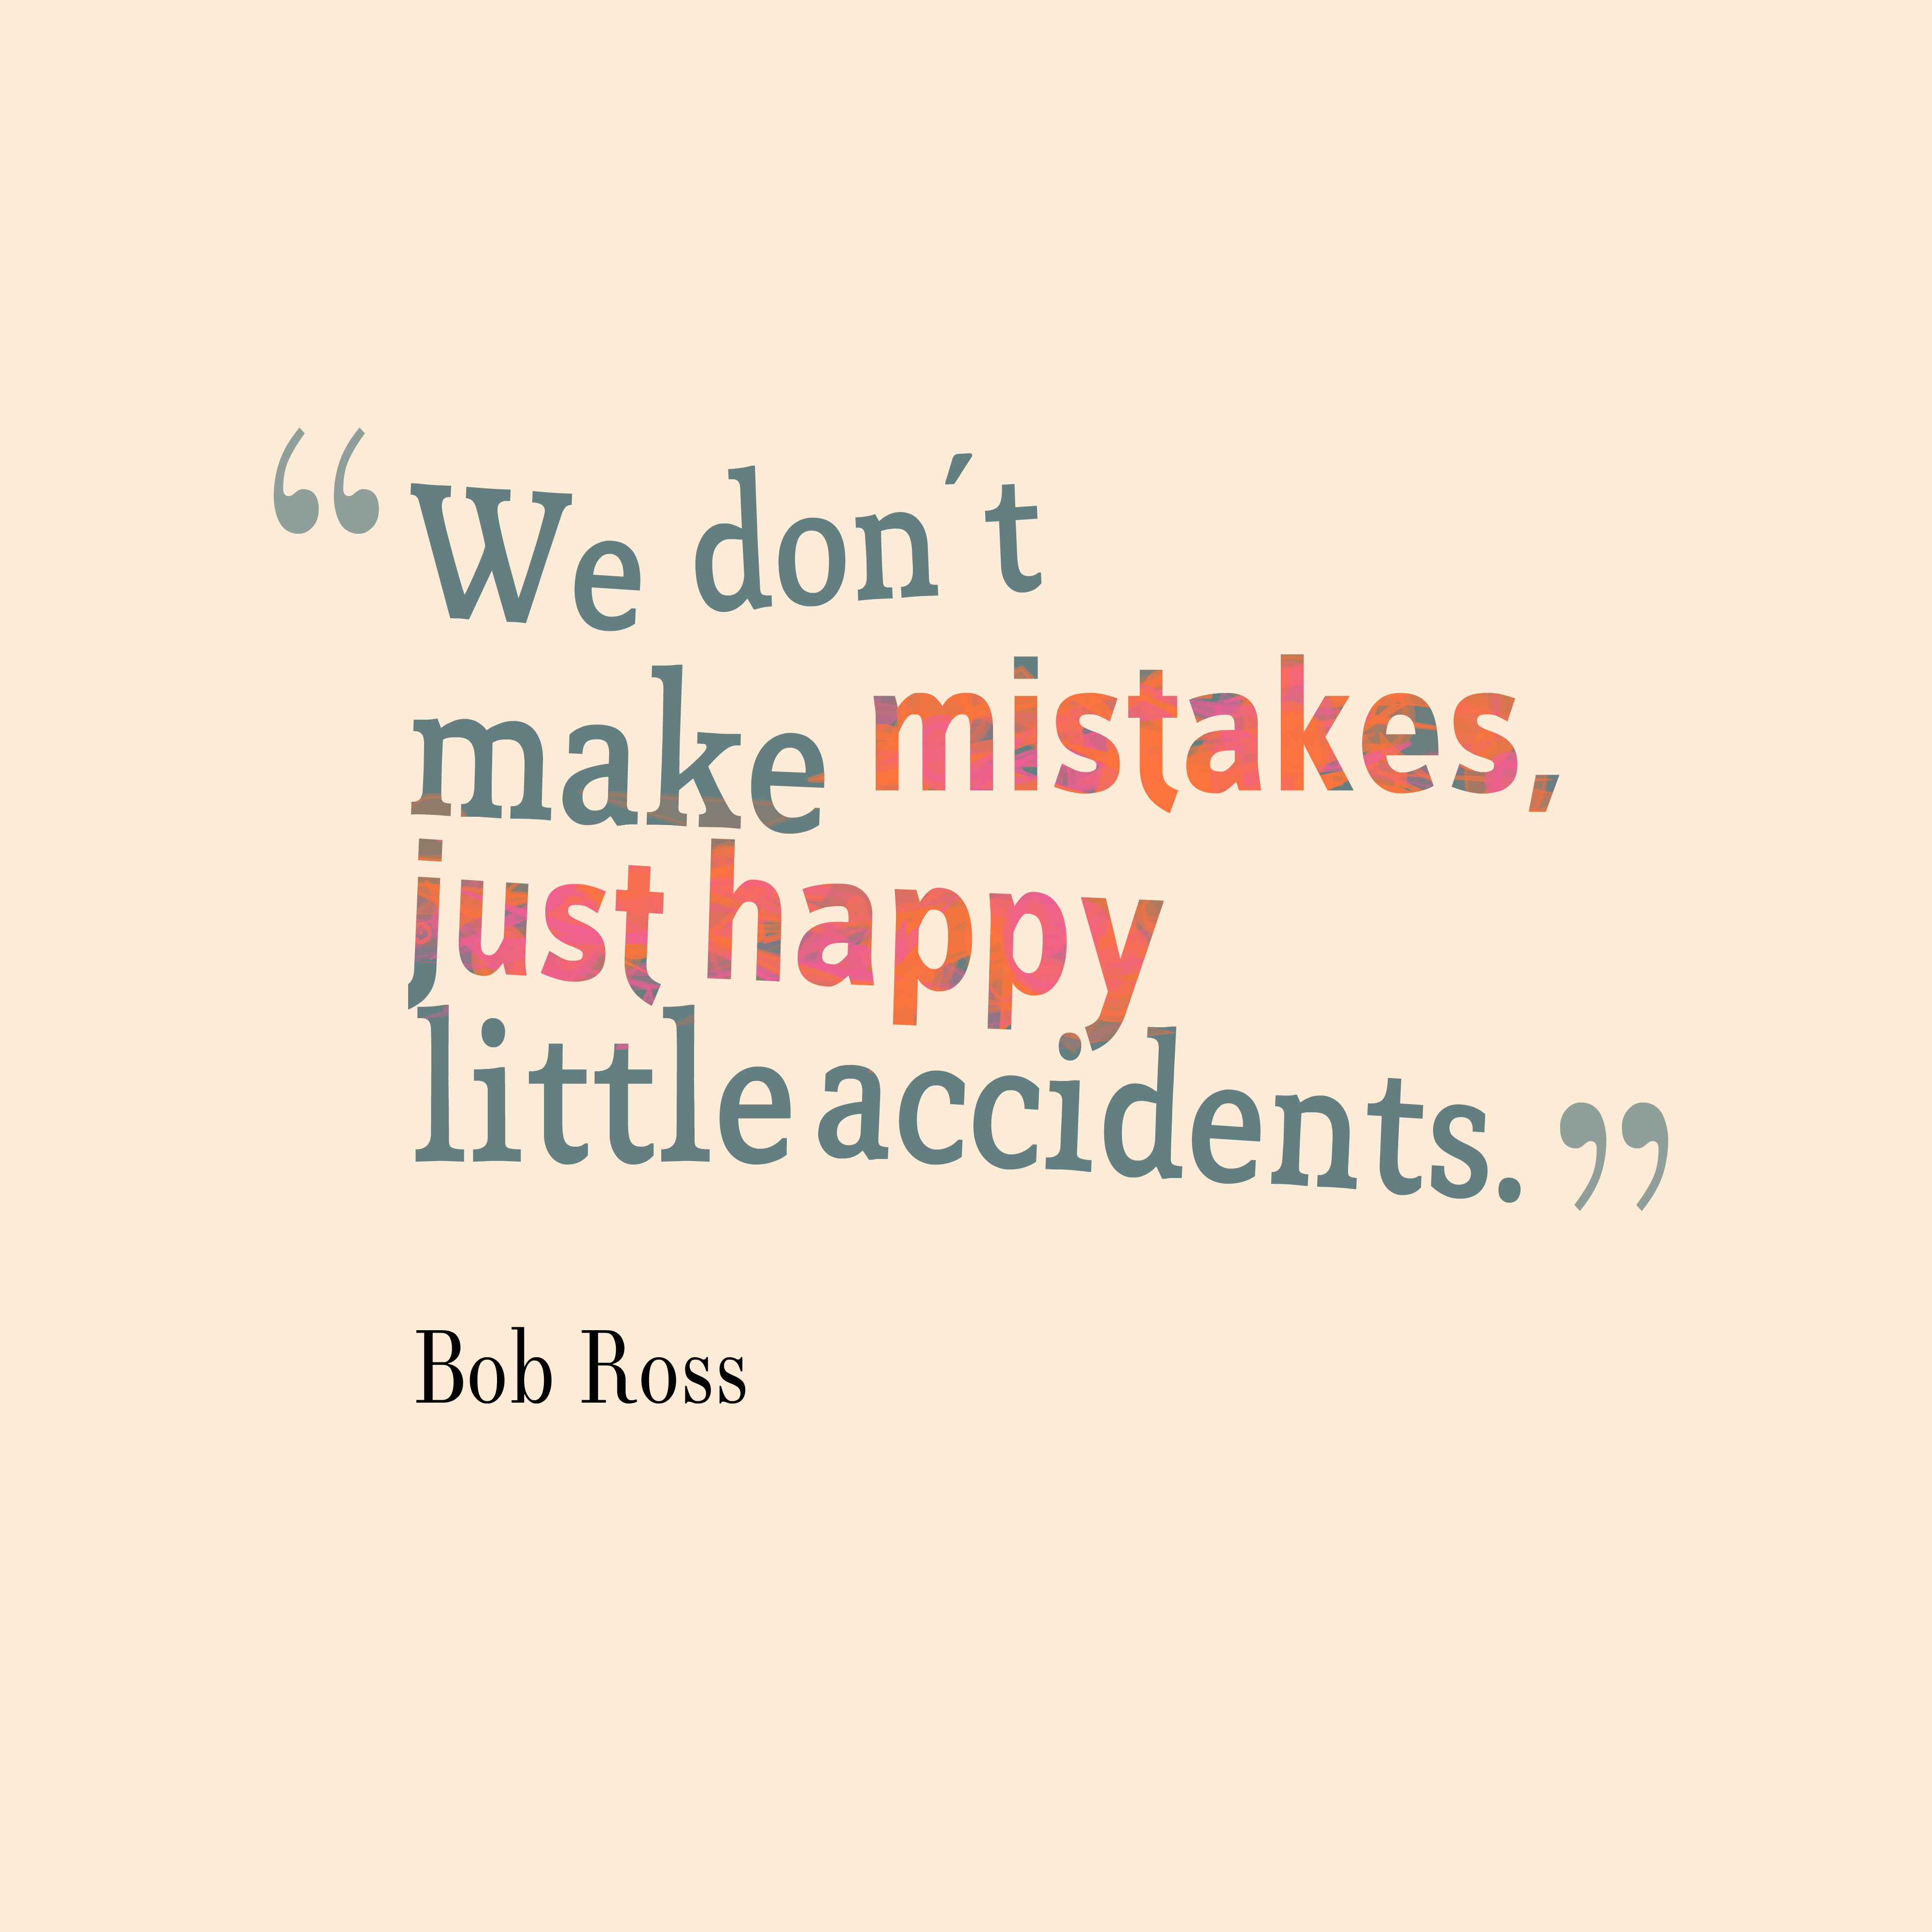 Mistake Quotes: Making Mistakes Quotes About Friends. QuotesGram